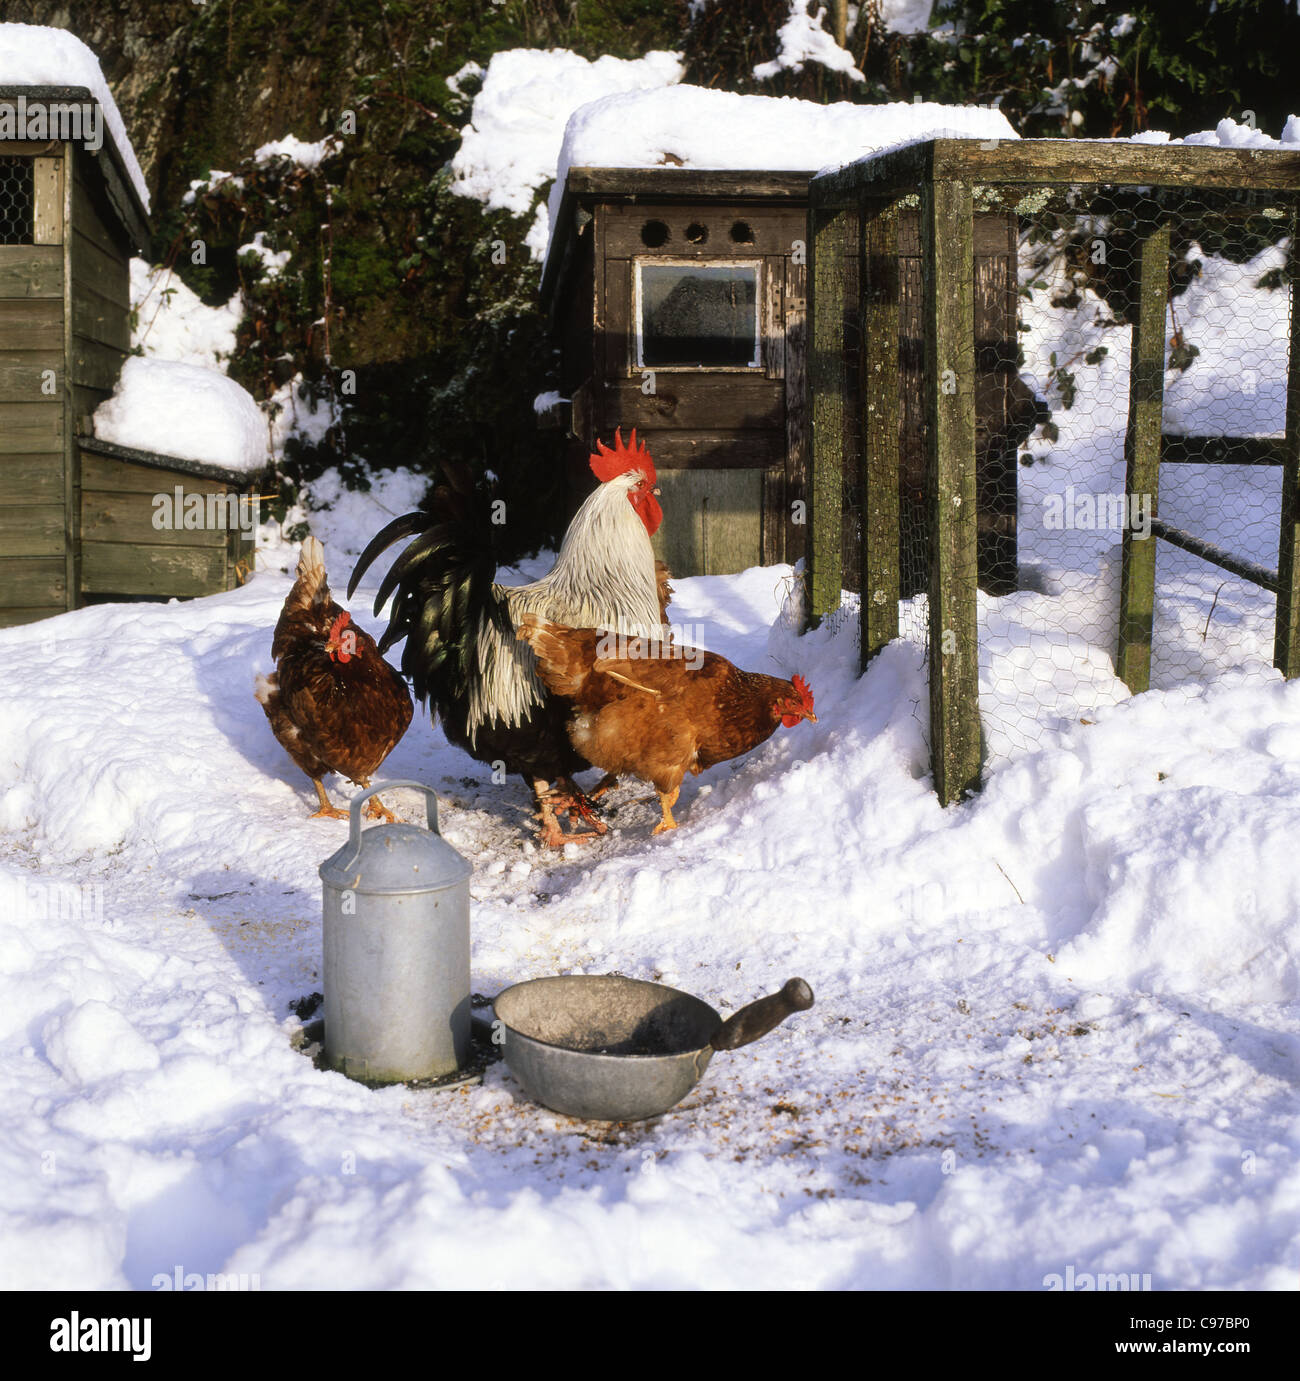 A cockerel and hens chickens pecking for food in the snow in winter Carmarthenshire Wales UK KATHY DEWITT - Stock Image